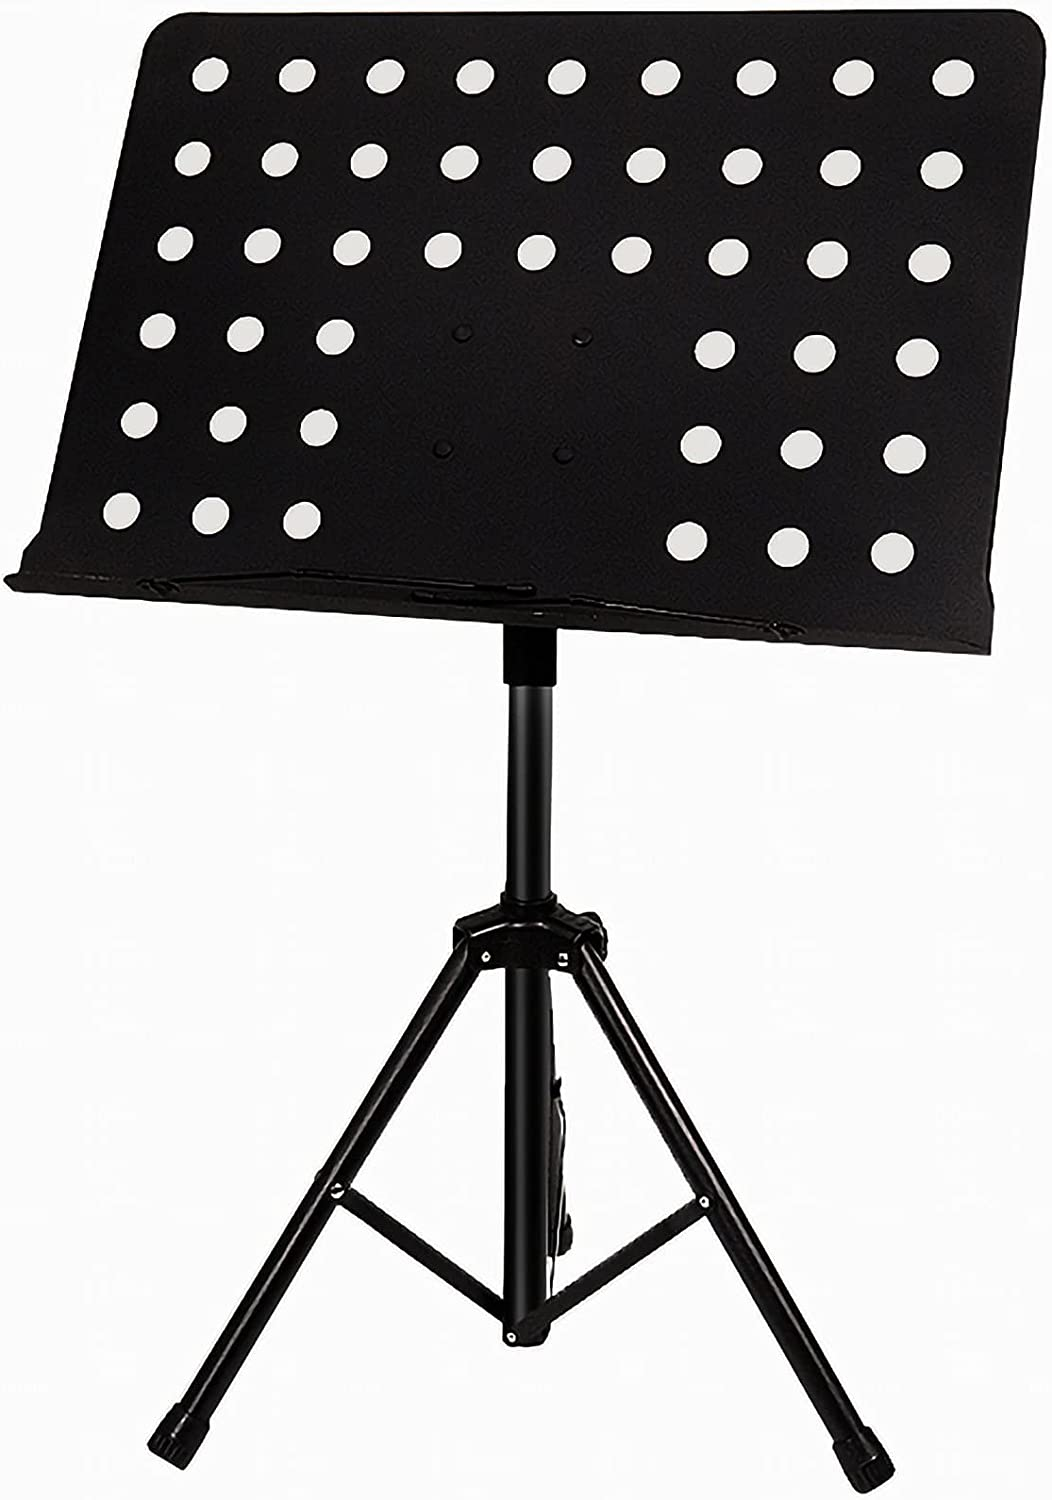 Tablet Stand Now free shipping Bookshelf Max 77% OFF Music Adjustable Height Stable